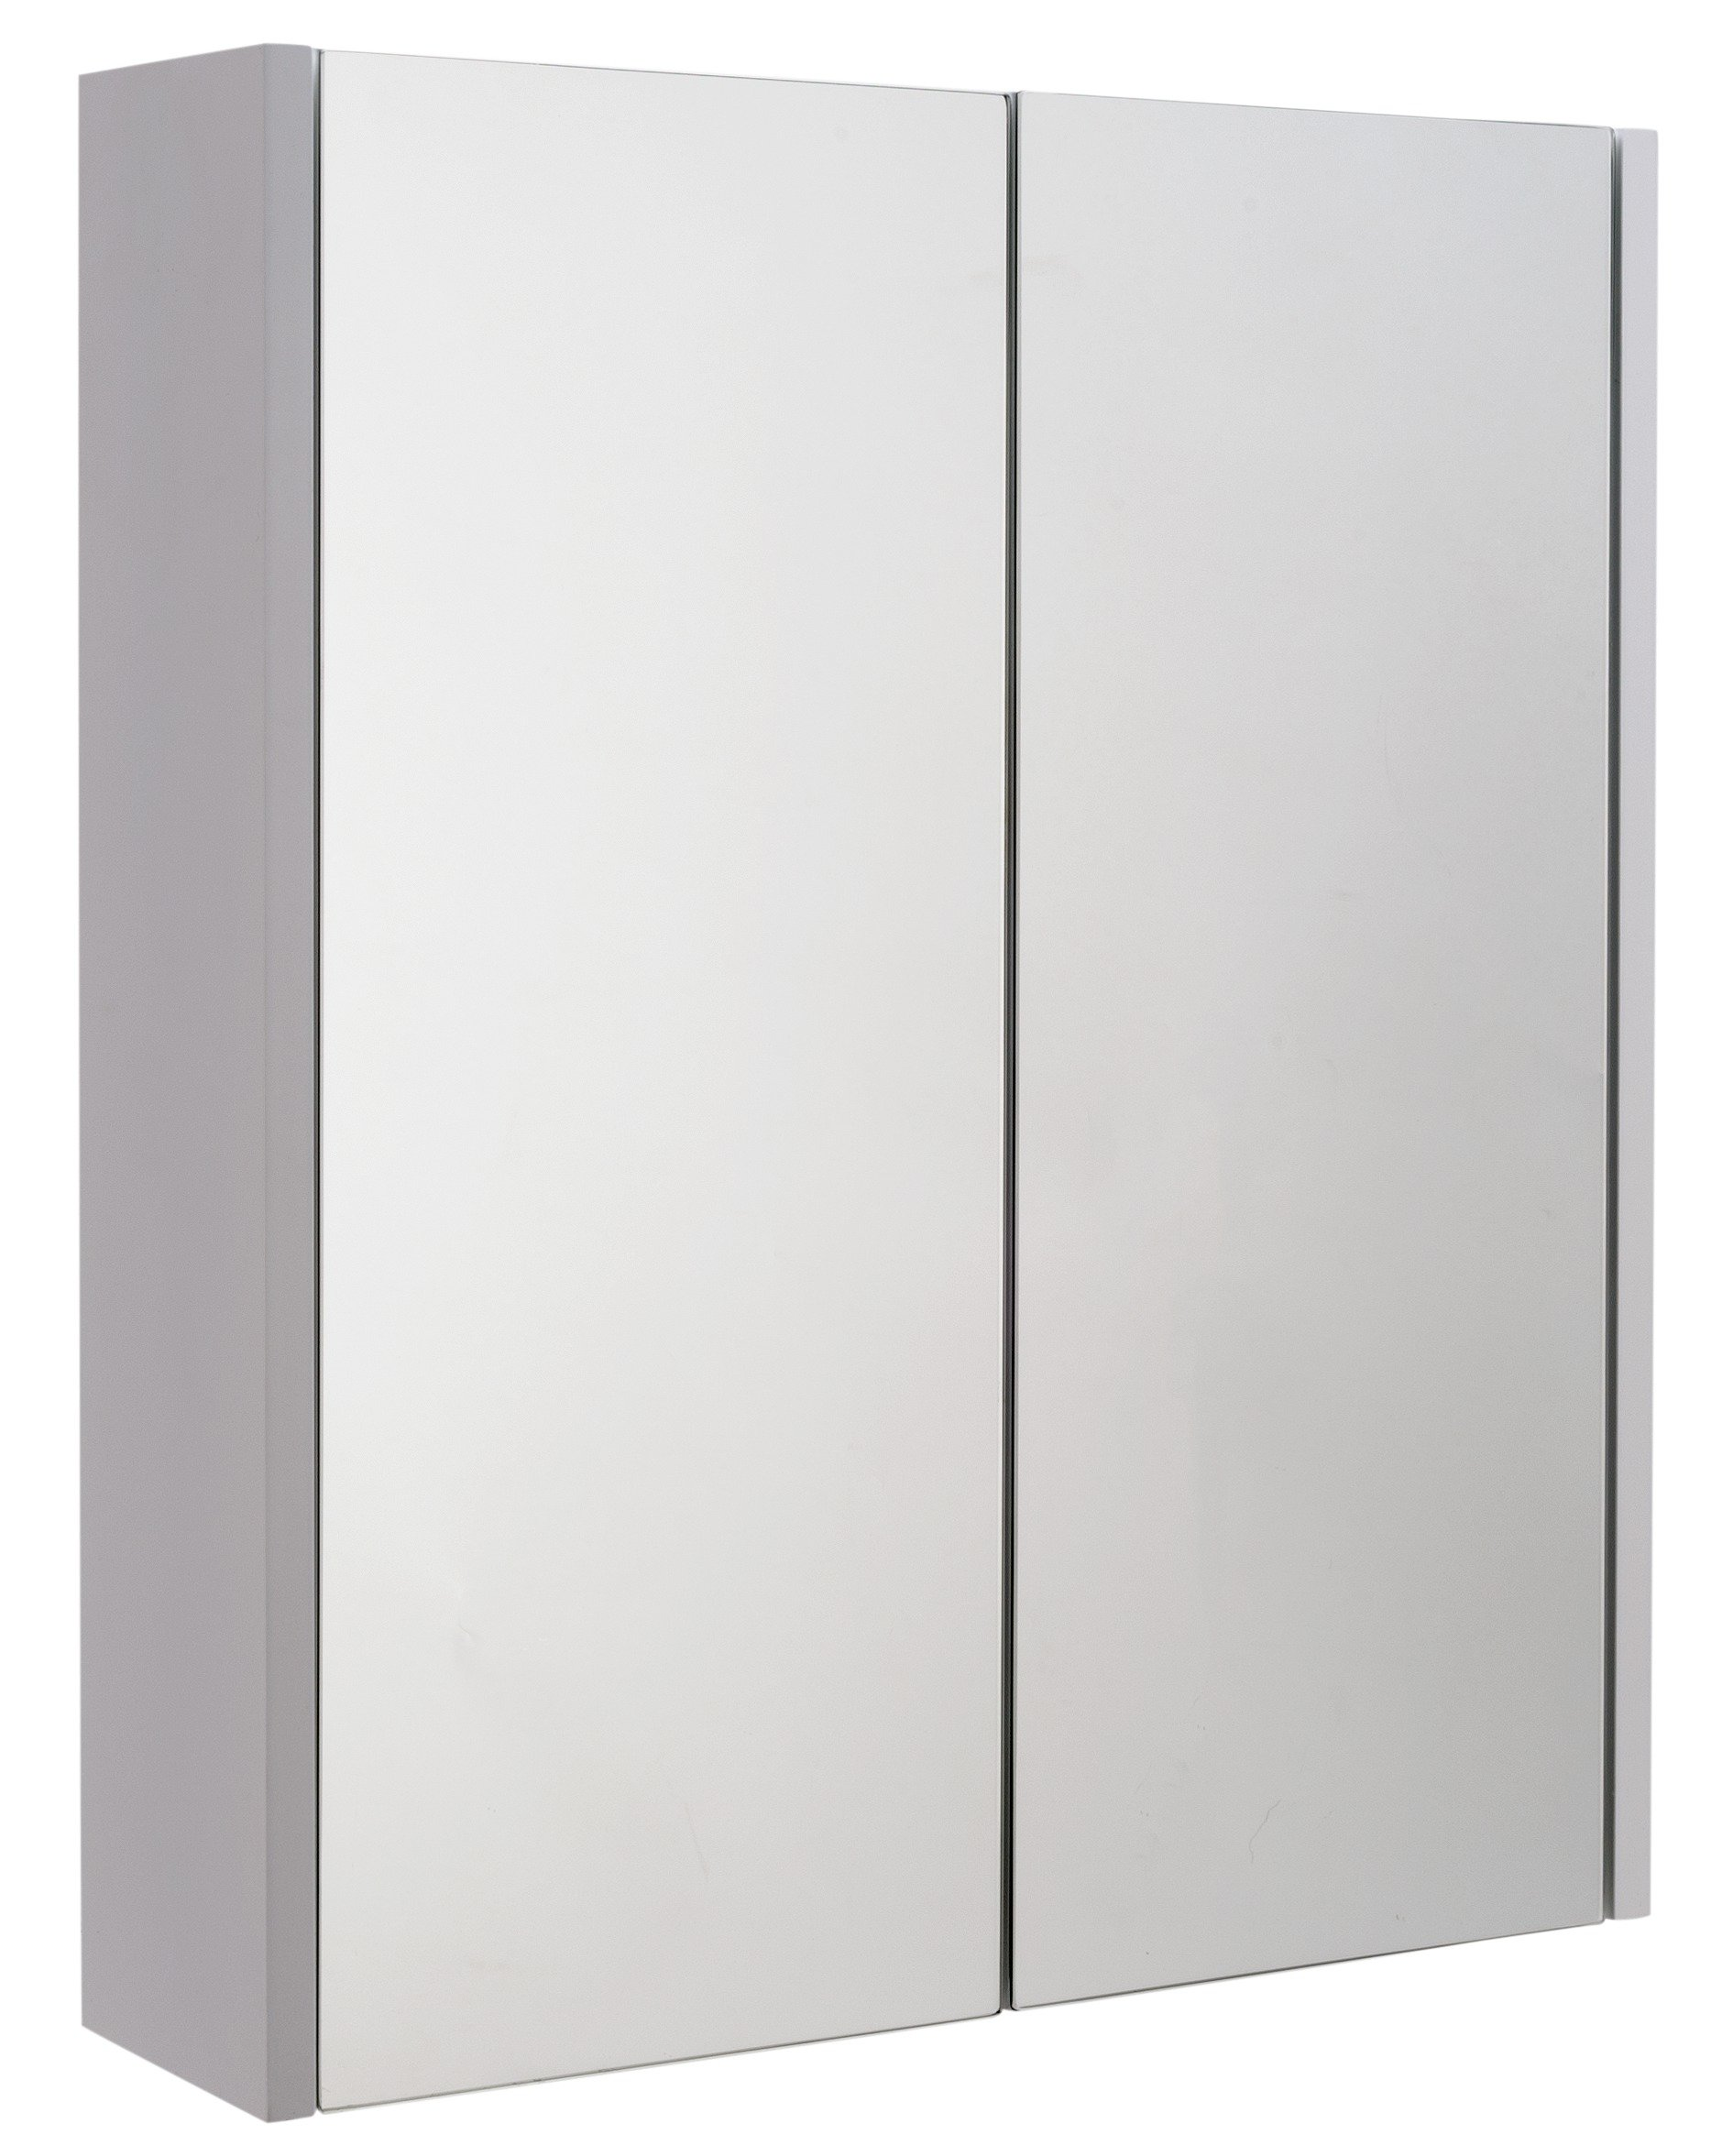 bathroom wall cabinets argos buy home 1 door mirrored bathroom cabinet at argos co uk 11845